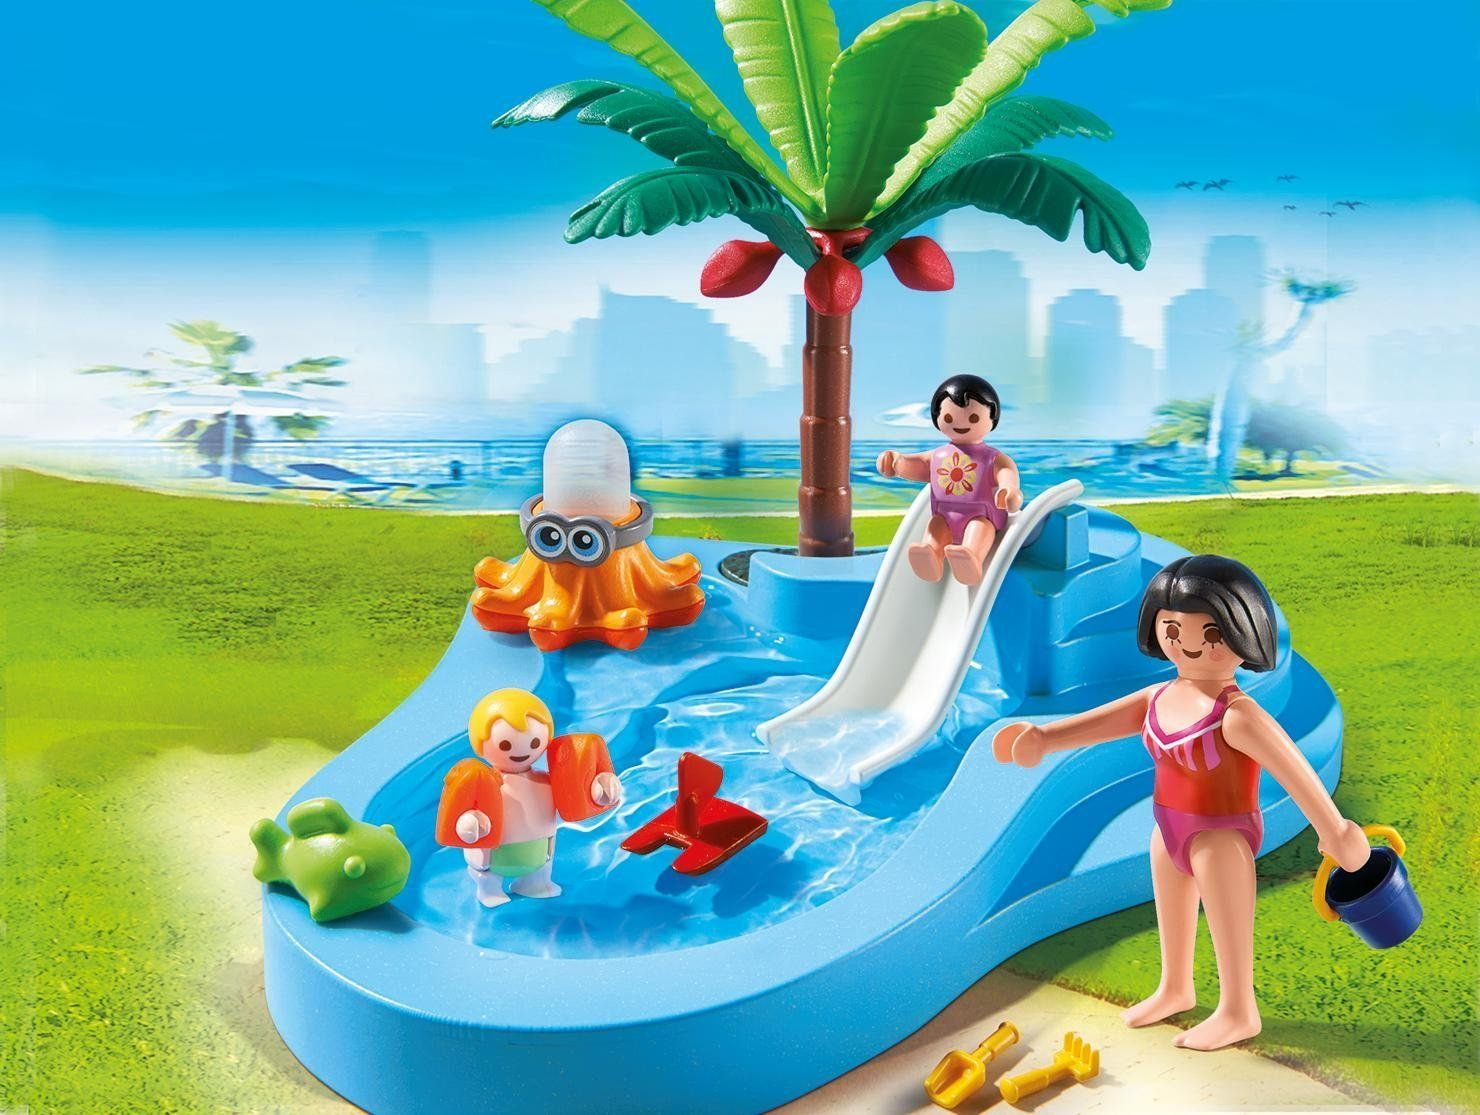 Amazon Piscina Playmobil Piscina Para Niños Con Bebé 66730 Amazon Es